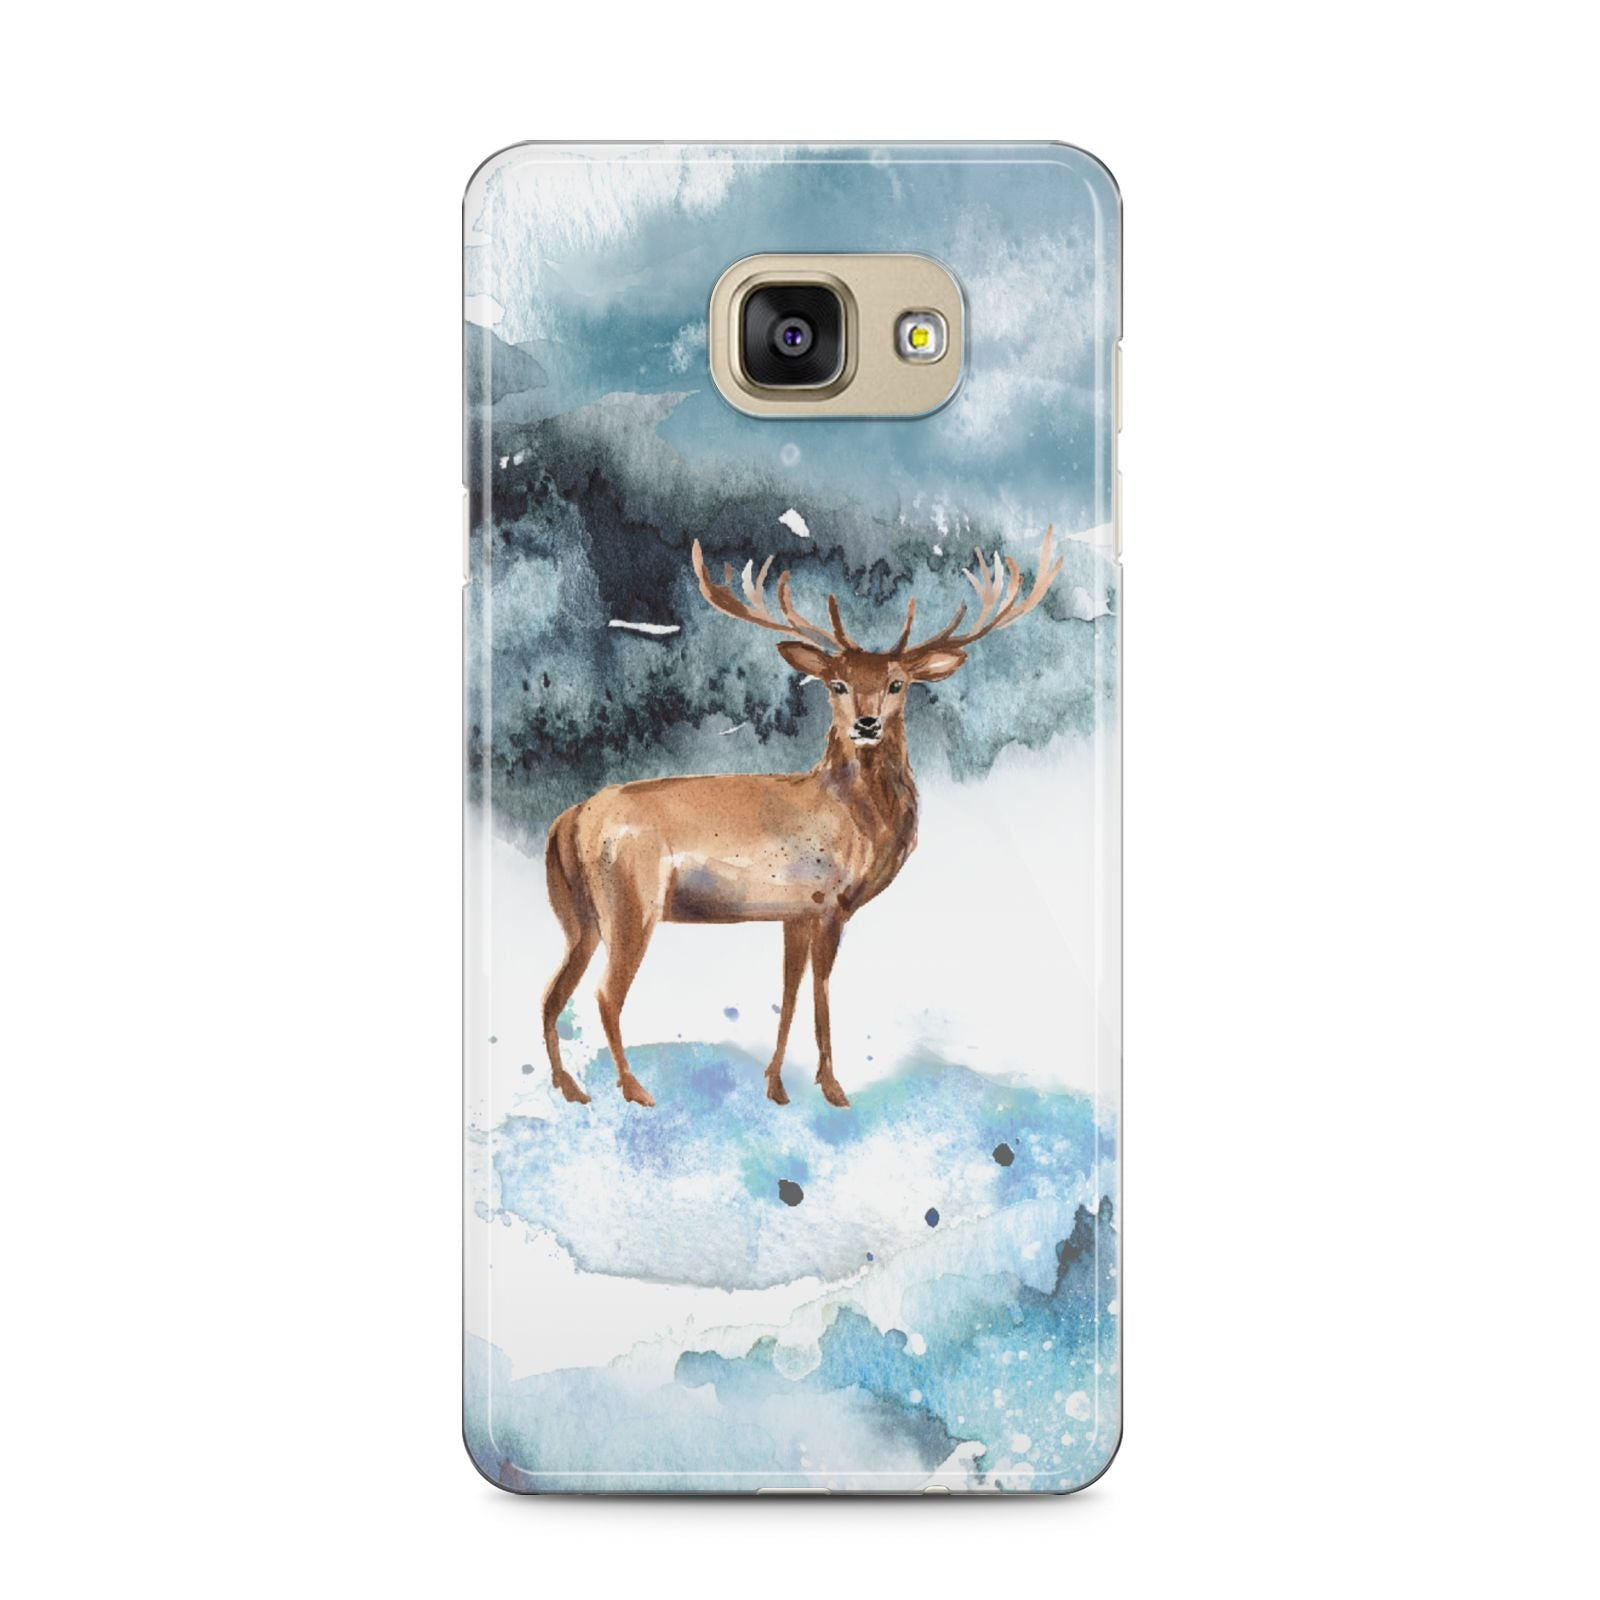 Christmas Winter Stag Samsung Galaxy A5 2016 Case on gold phone